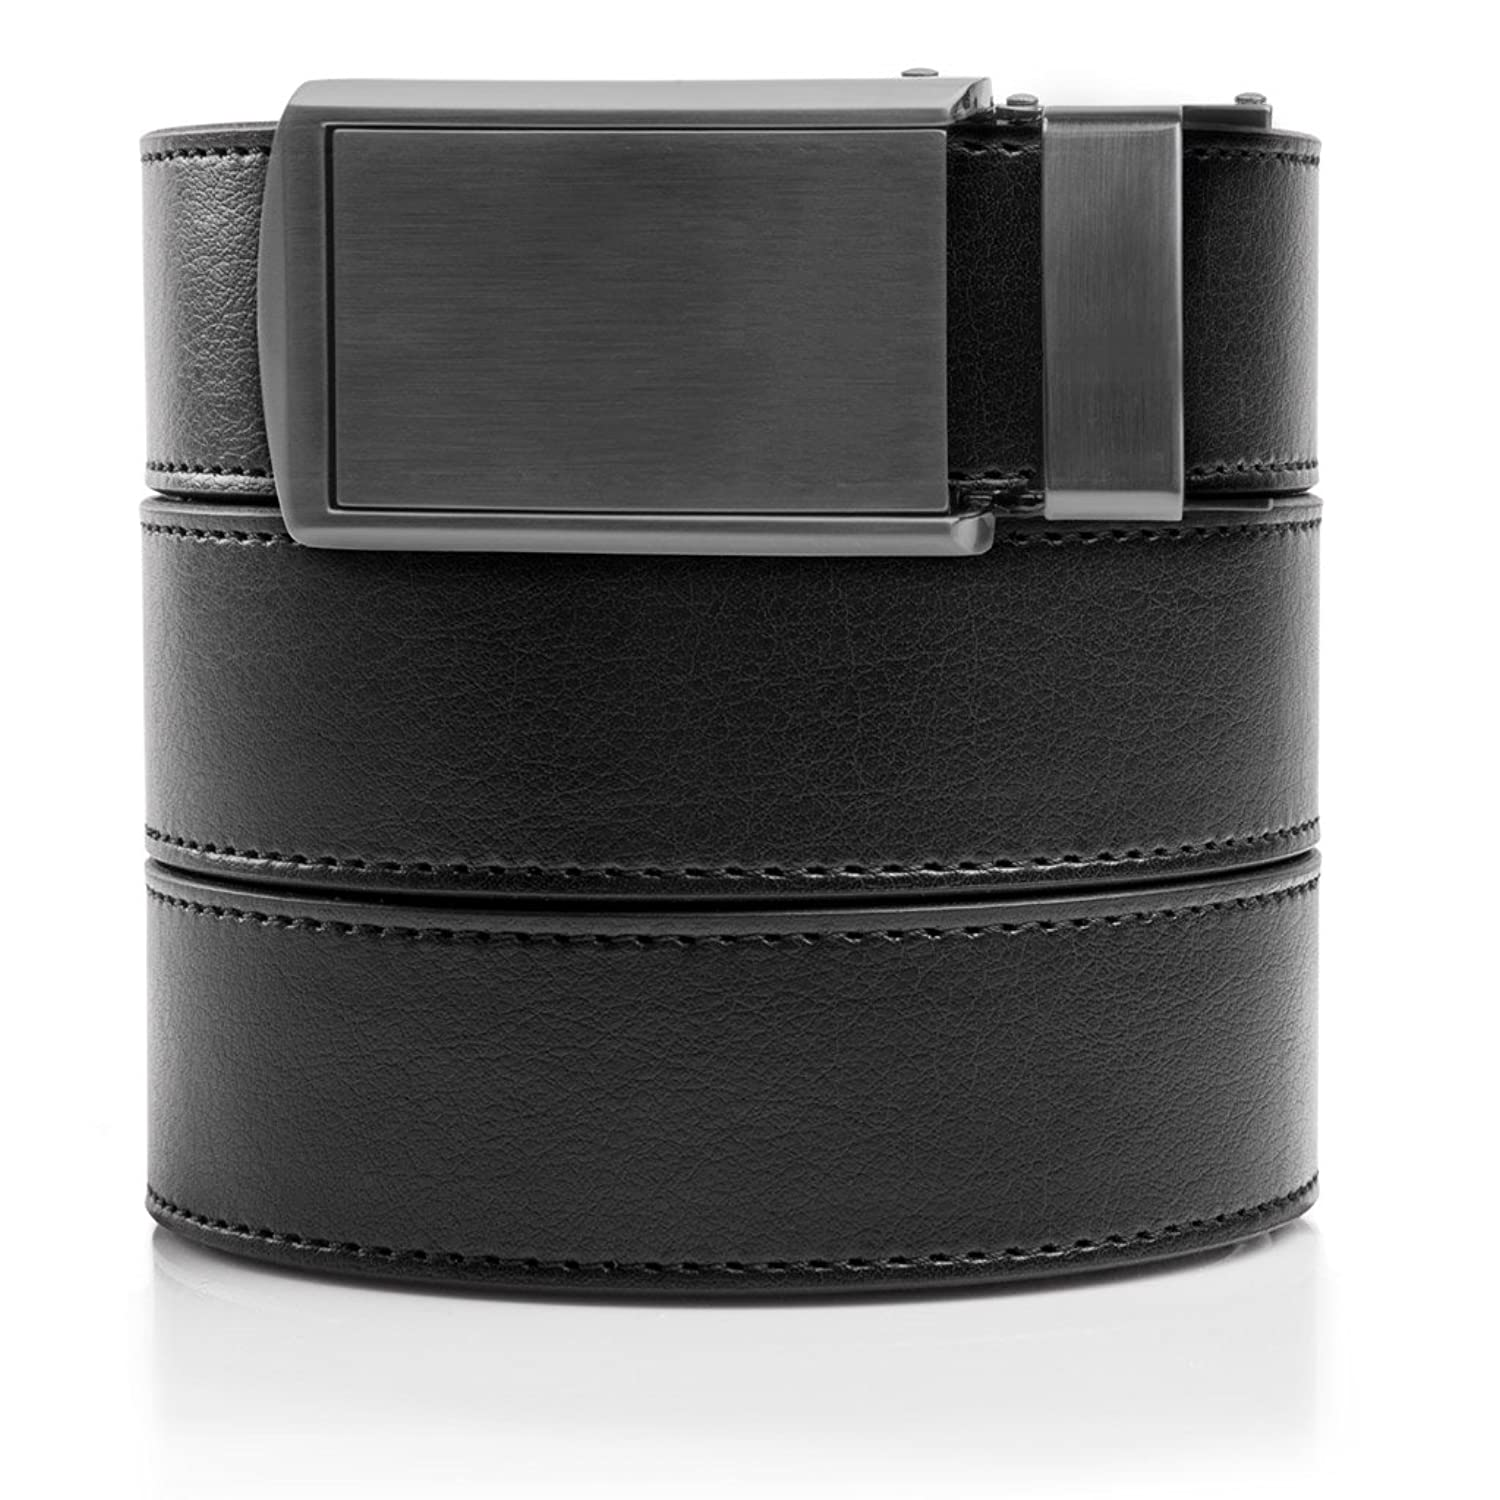 com slidebelts men s animal friendly leather belt out com slidebelts men s animal friendly leather belt out holes gunmetal buckle black leather trim to fit up to 48 waist arts